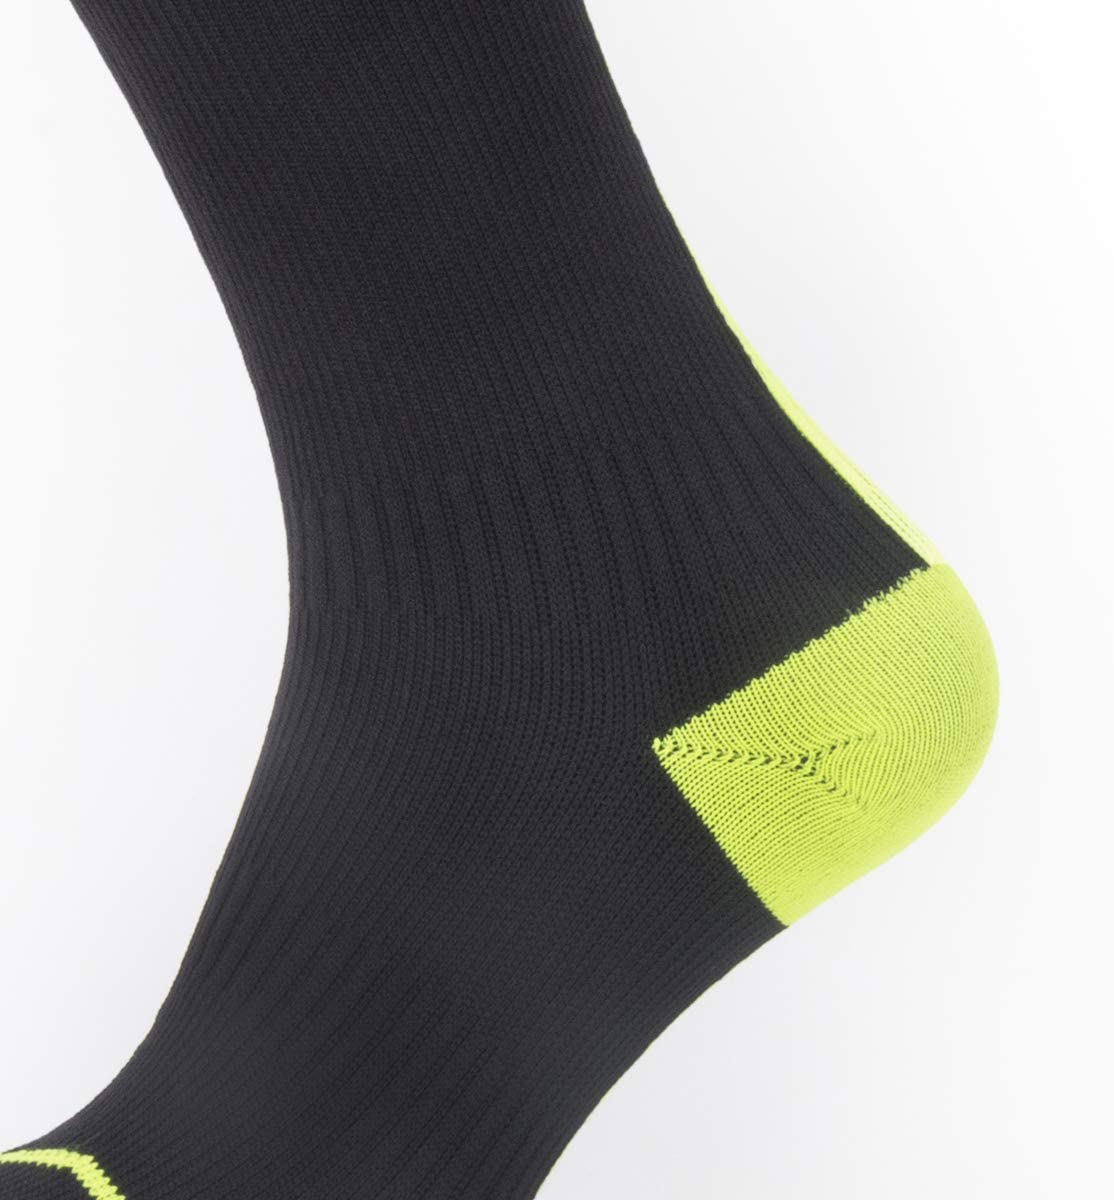 SEALSKINZ Waterproof All Weather Mid Length Sock with Hydrostop Cuff